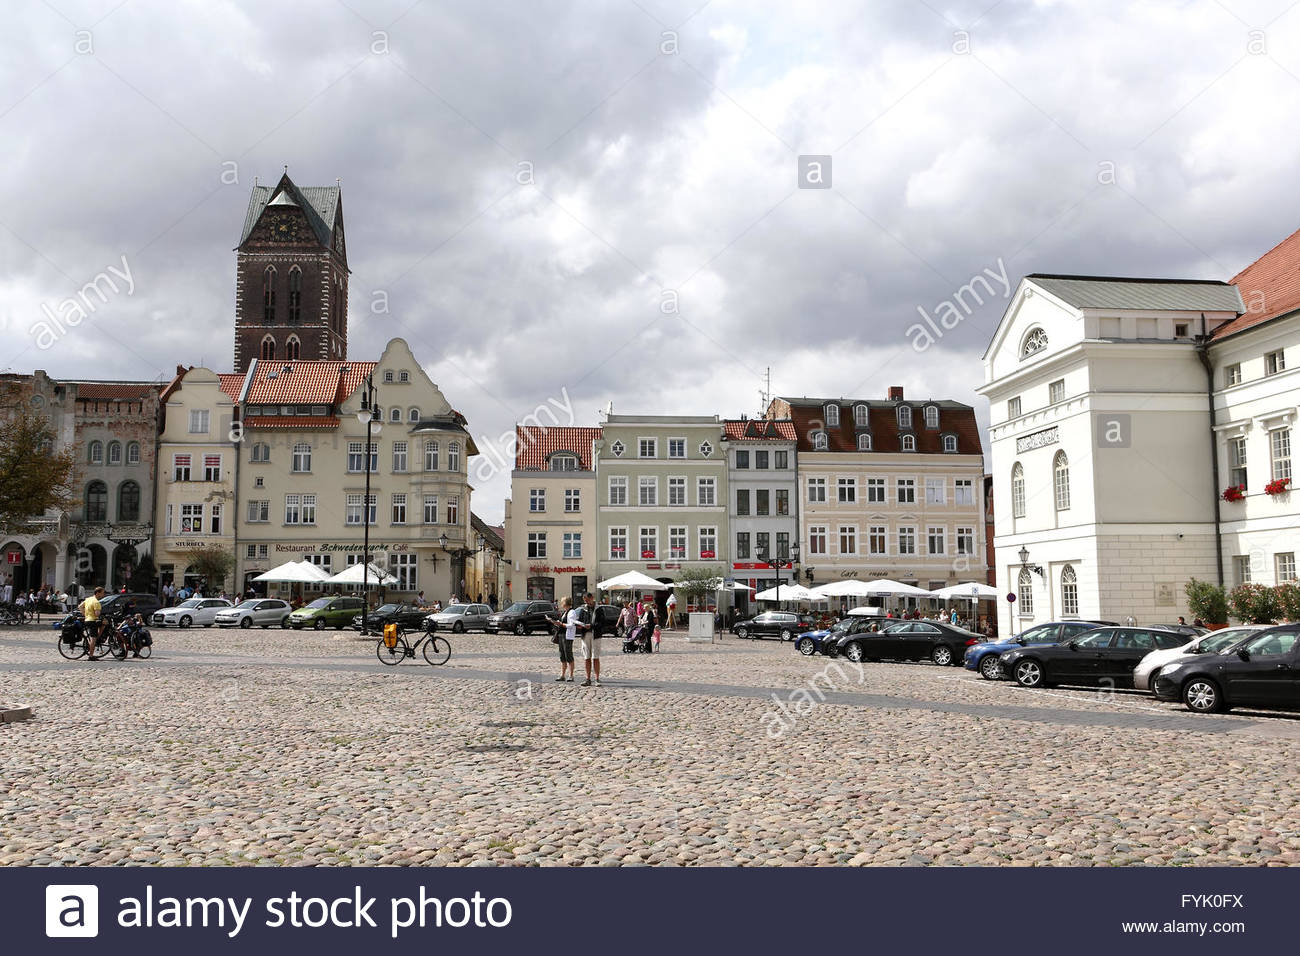 The historic market place in Wismar - Stock Image